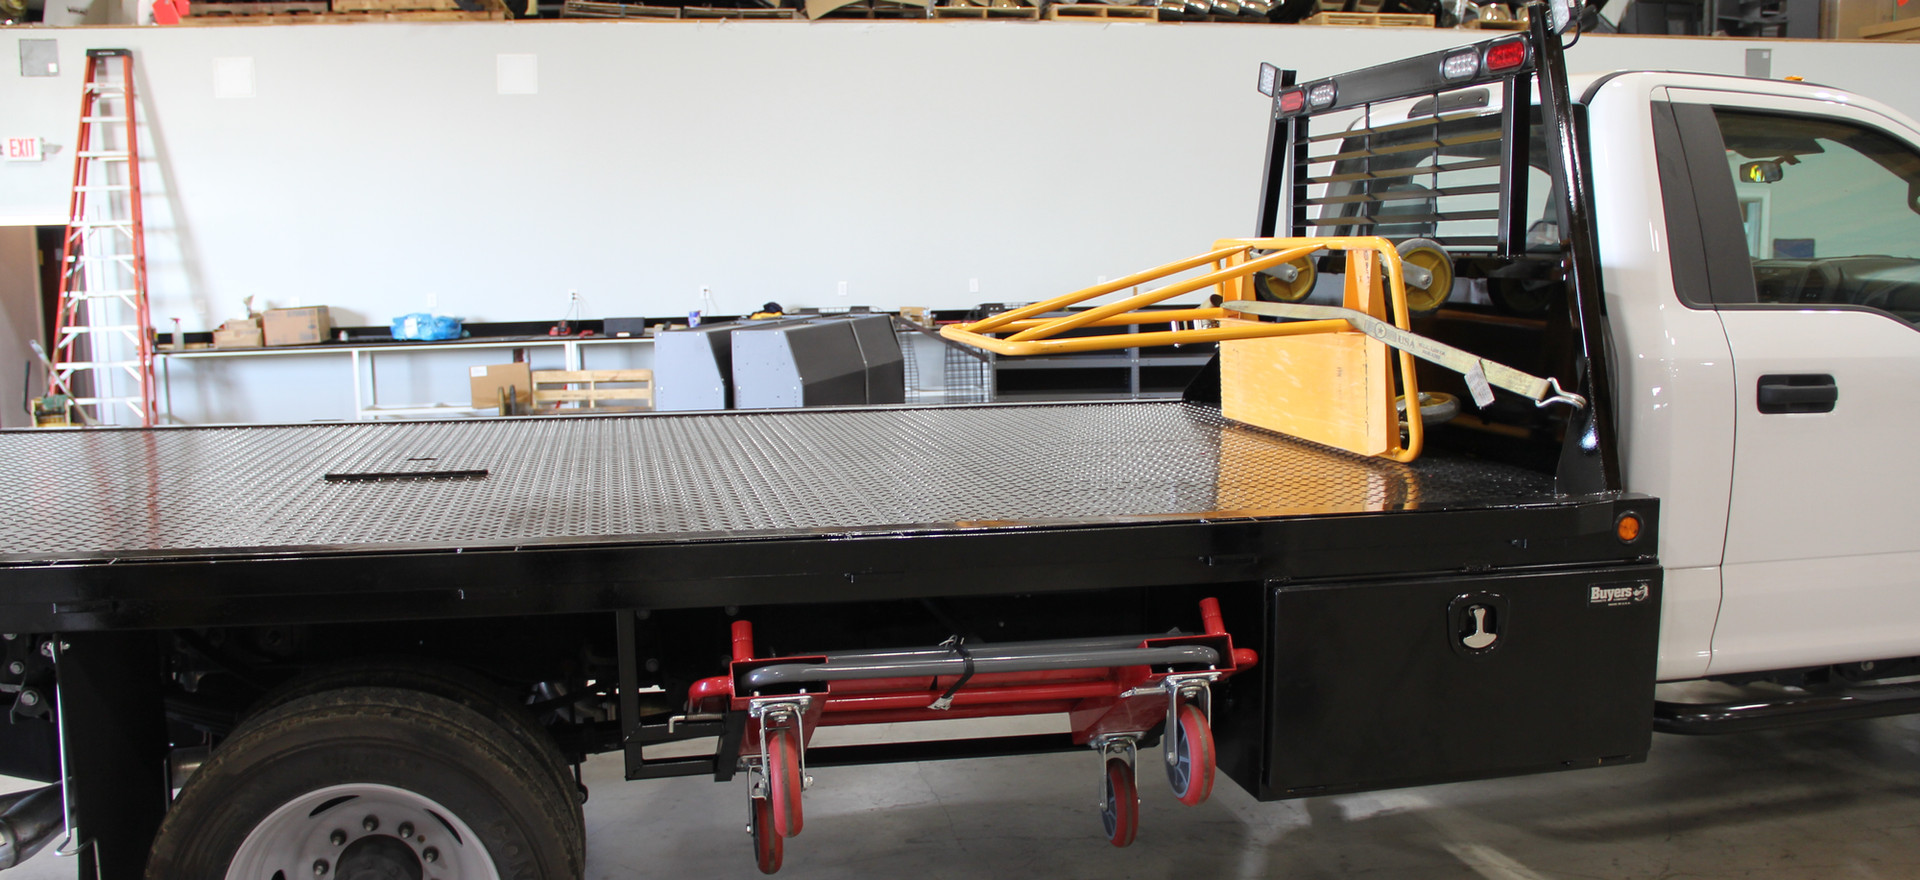 JPE Flatbed We Built With Drywall Dollli